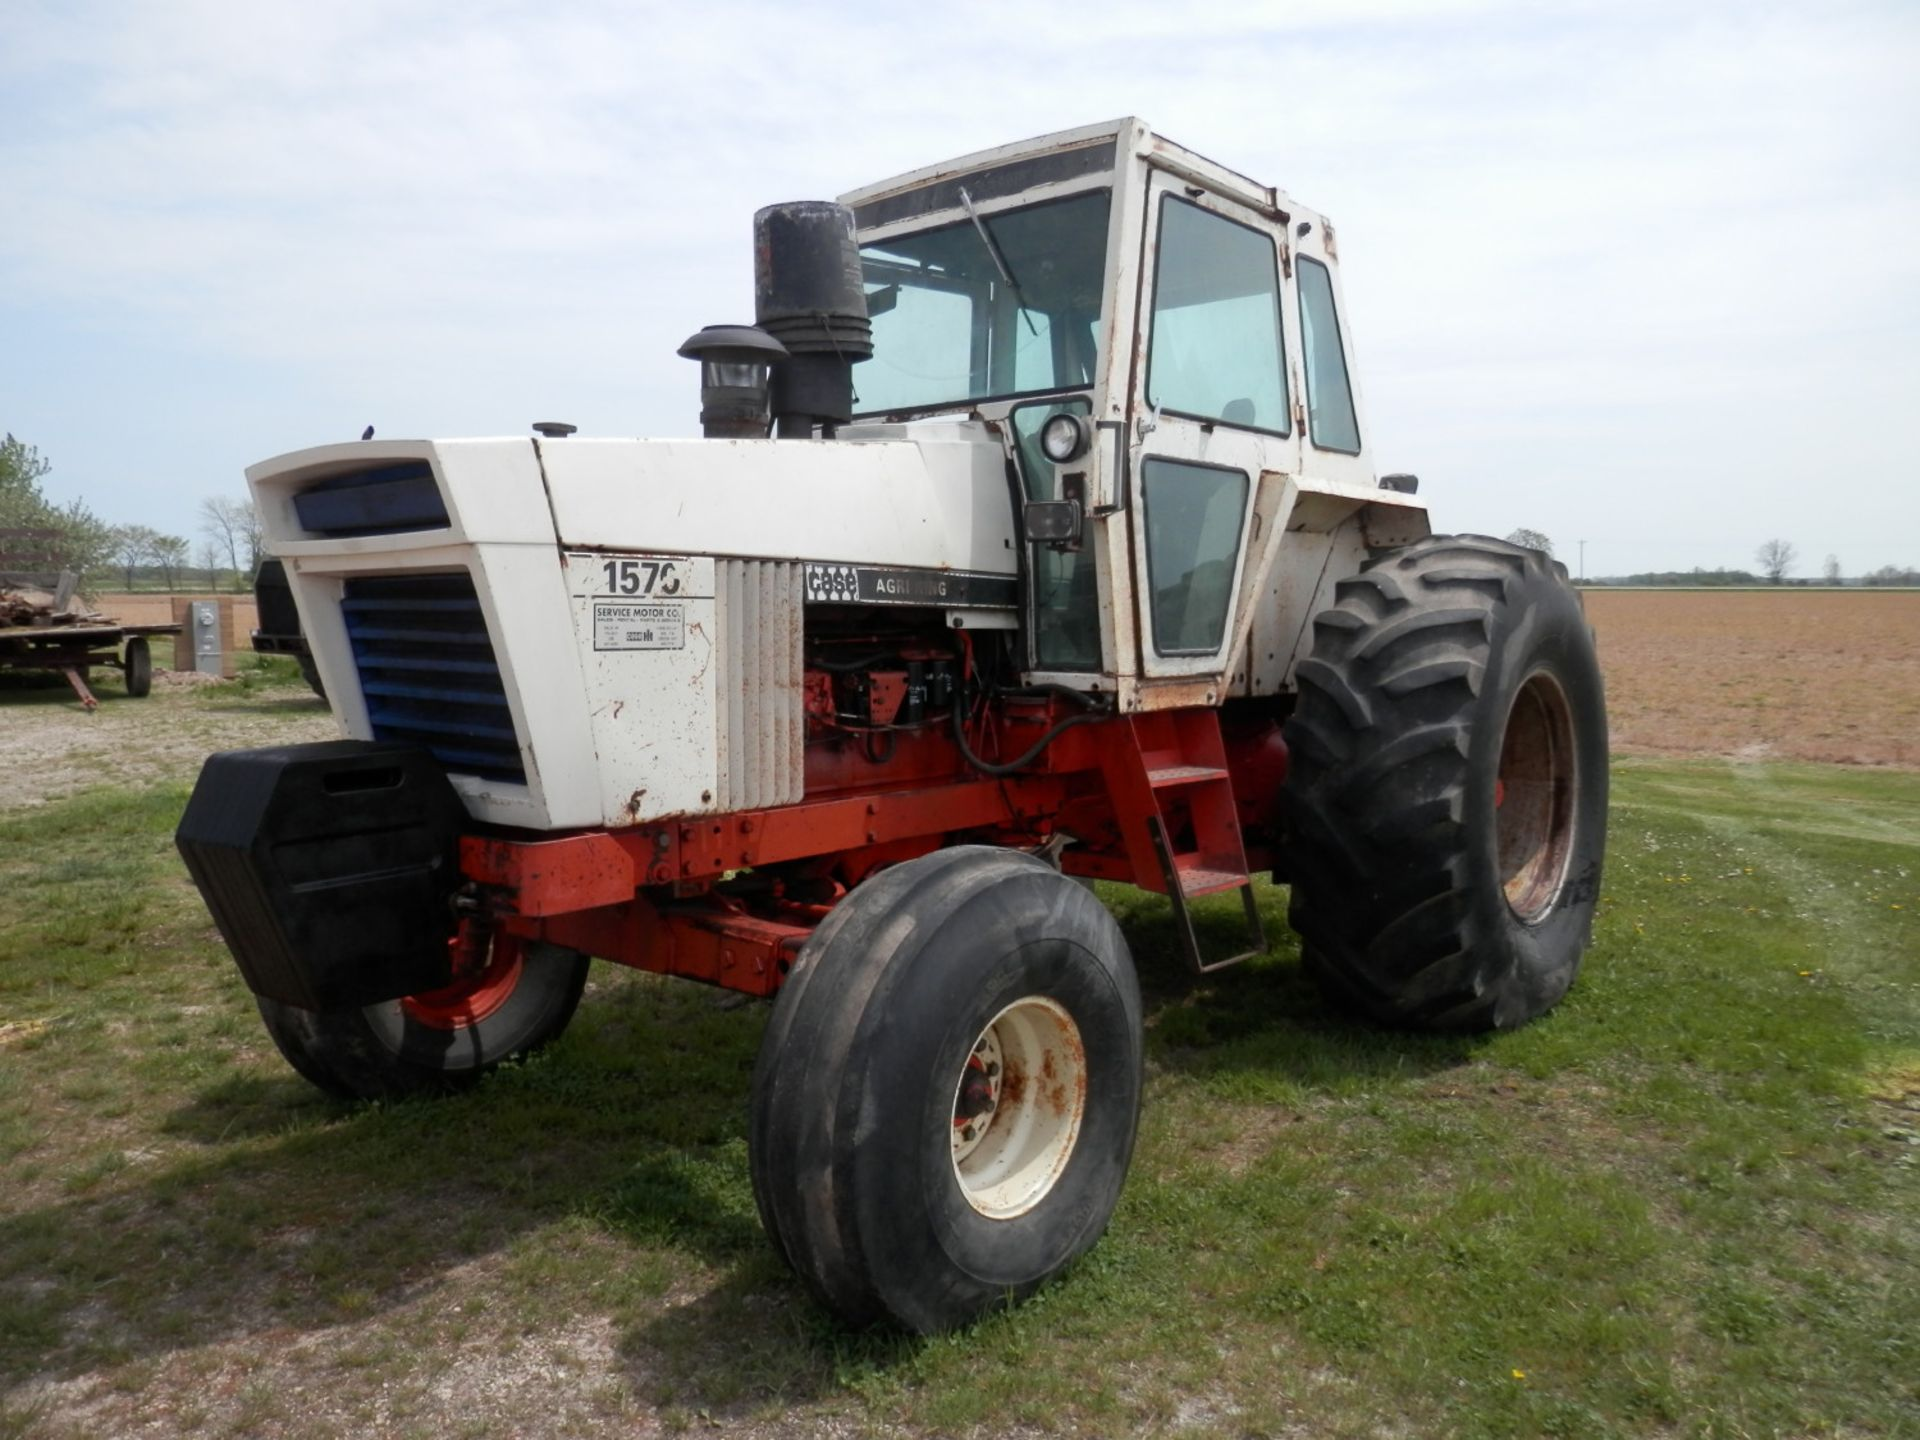 CASE 1570 AGRI KING TRACTOR - Image 6 of 8